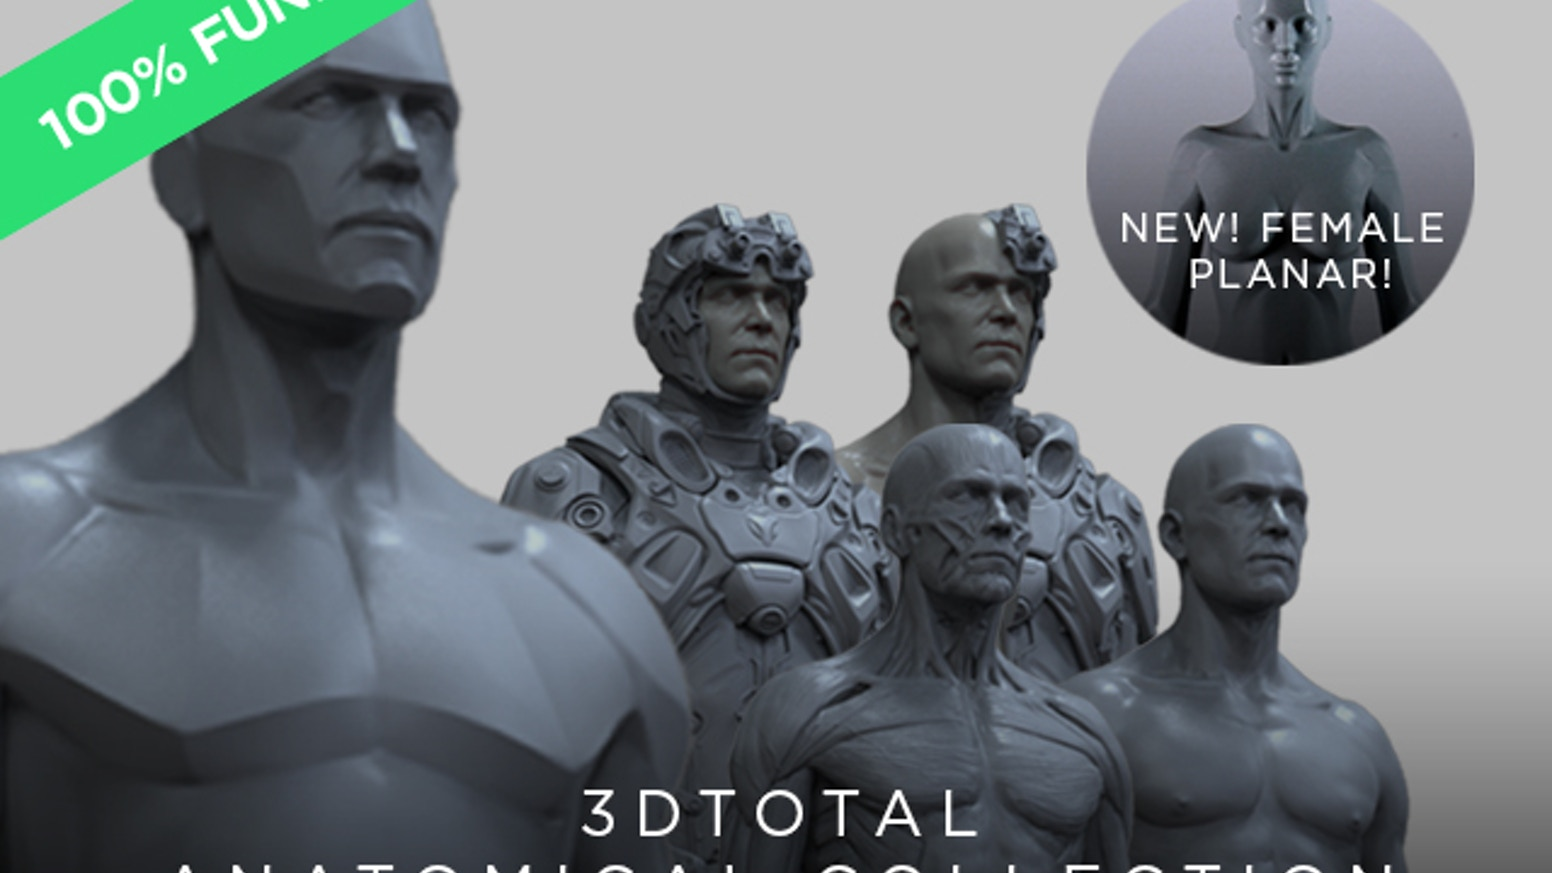 3dtotal Anatomical Collection Six New Reference Figures By 3dtotal